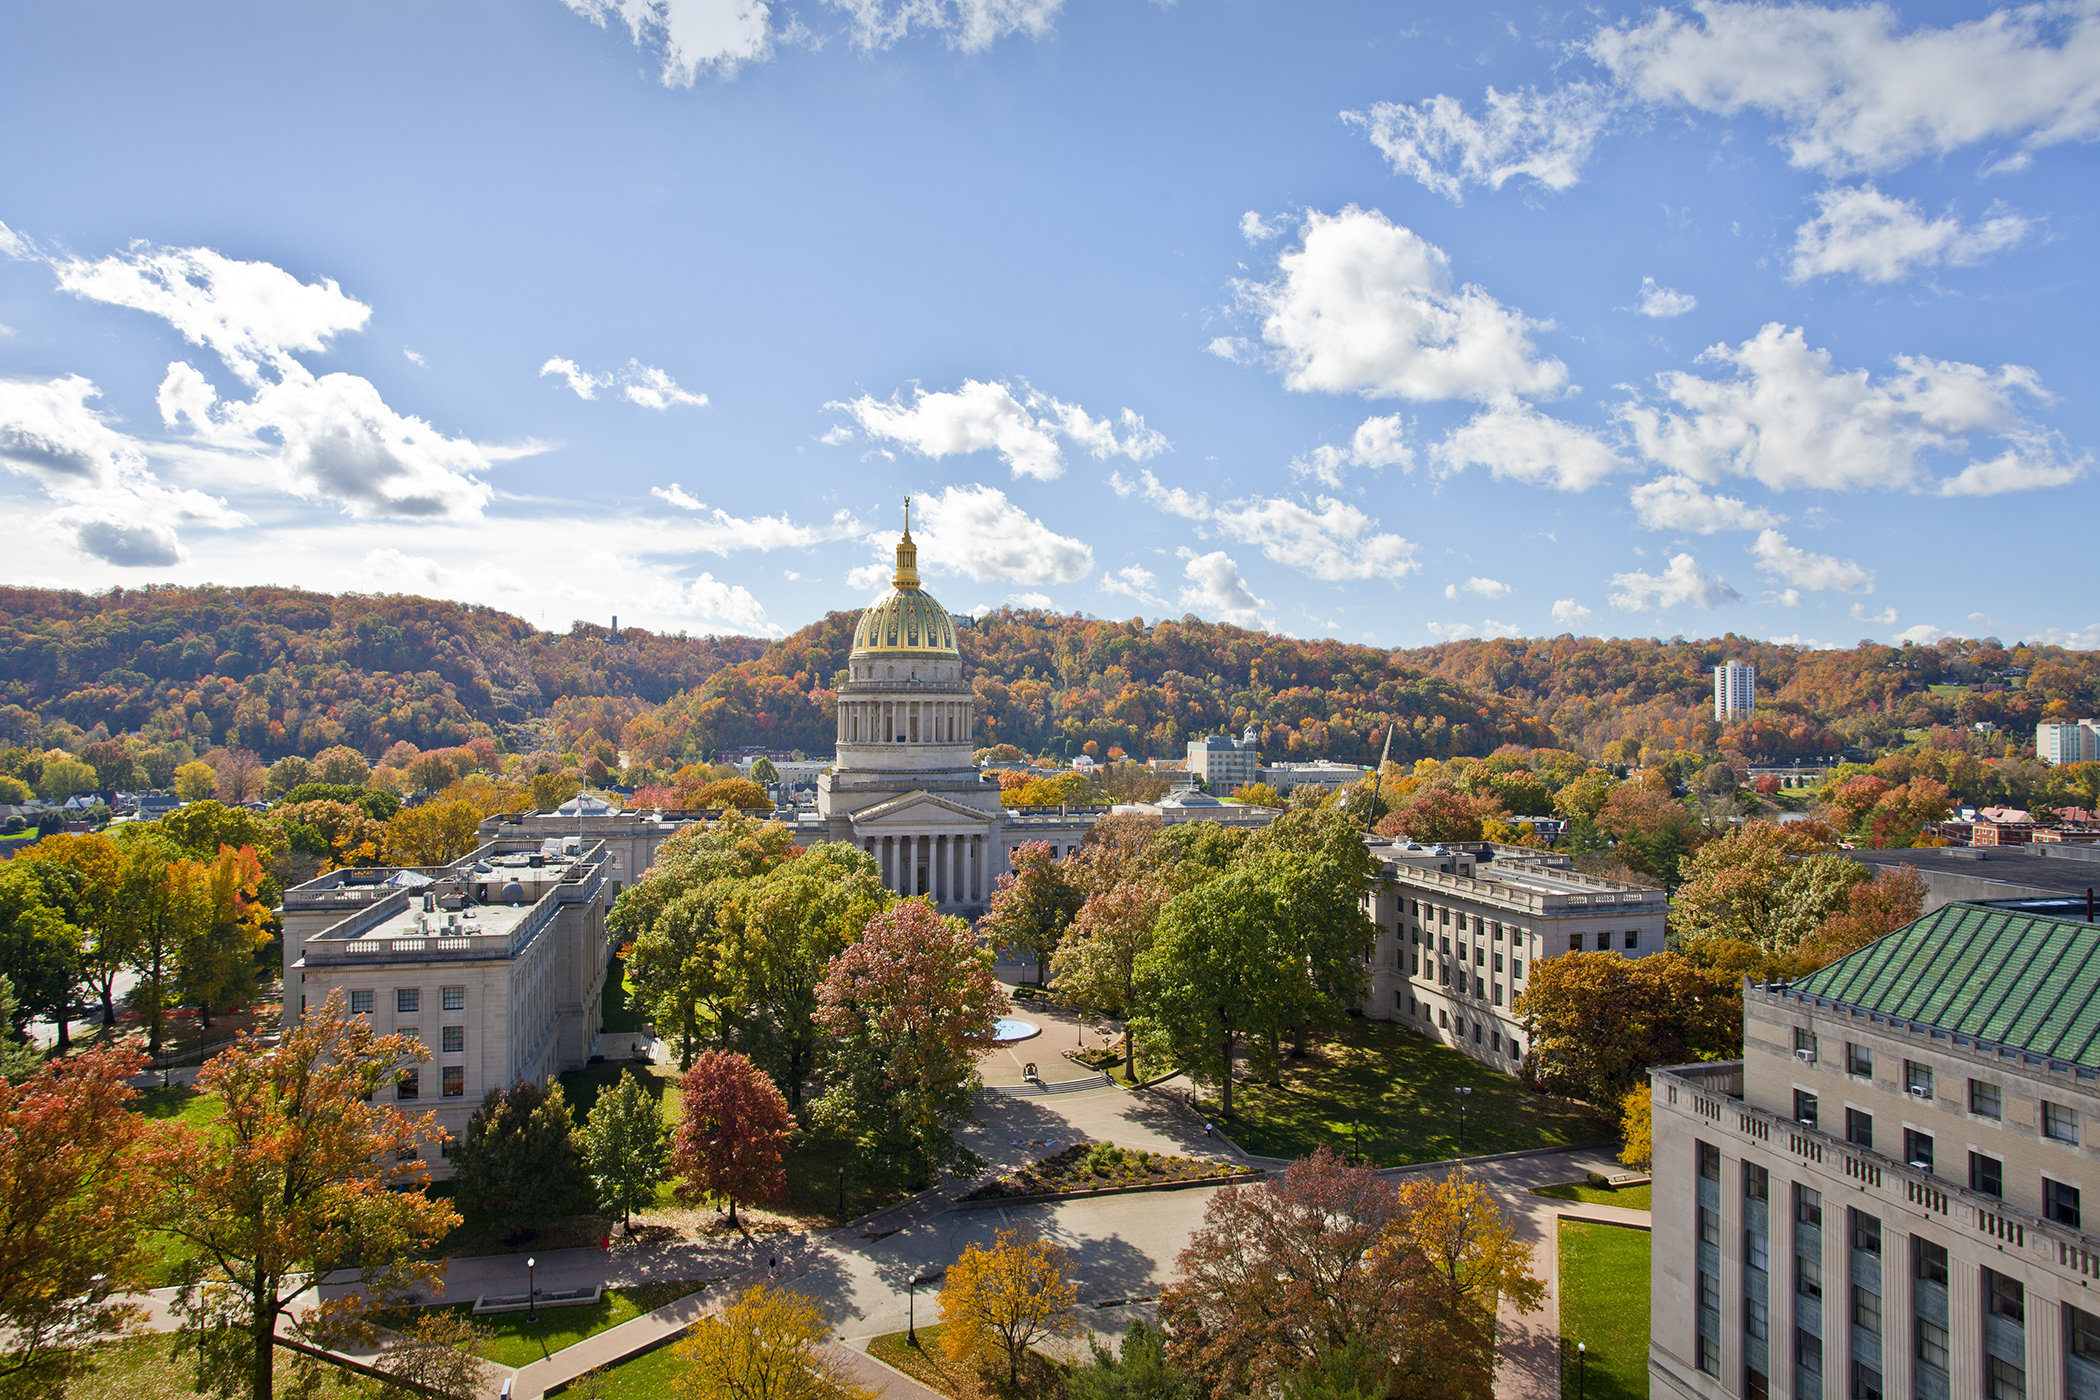 Charleston, West Virginia. Fall looks good on Charleston from across the North Plaza of the West Virginia State Capitol building in autumn.